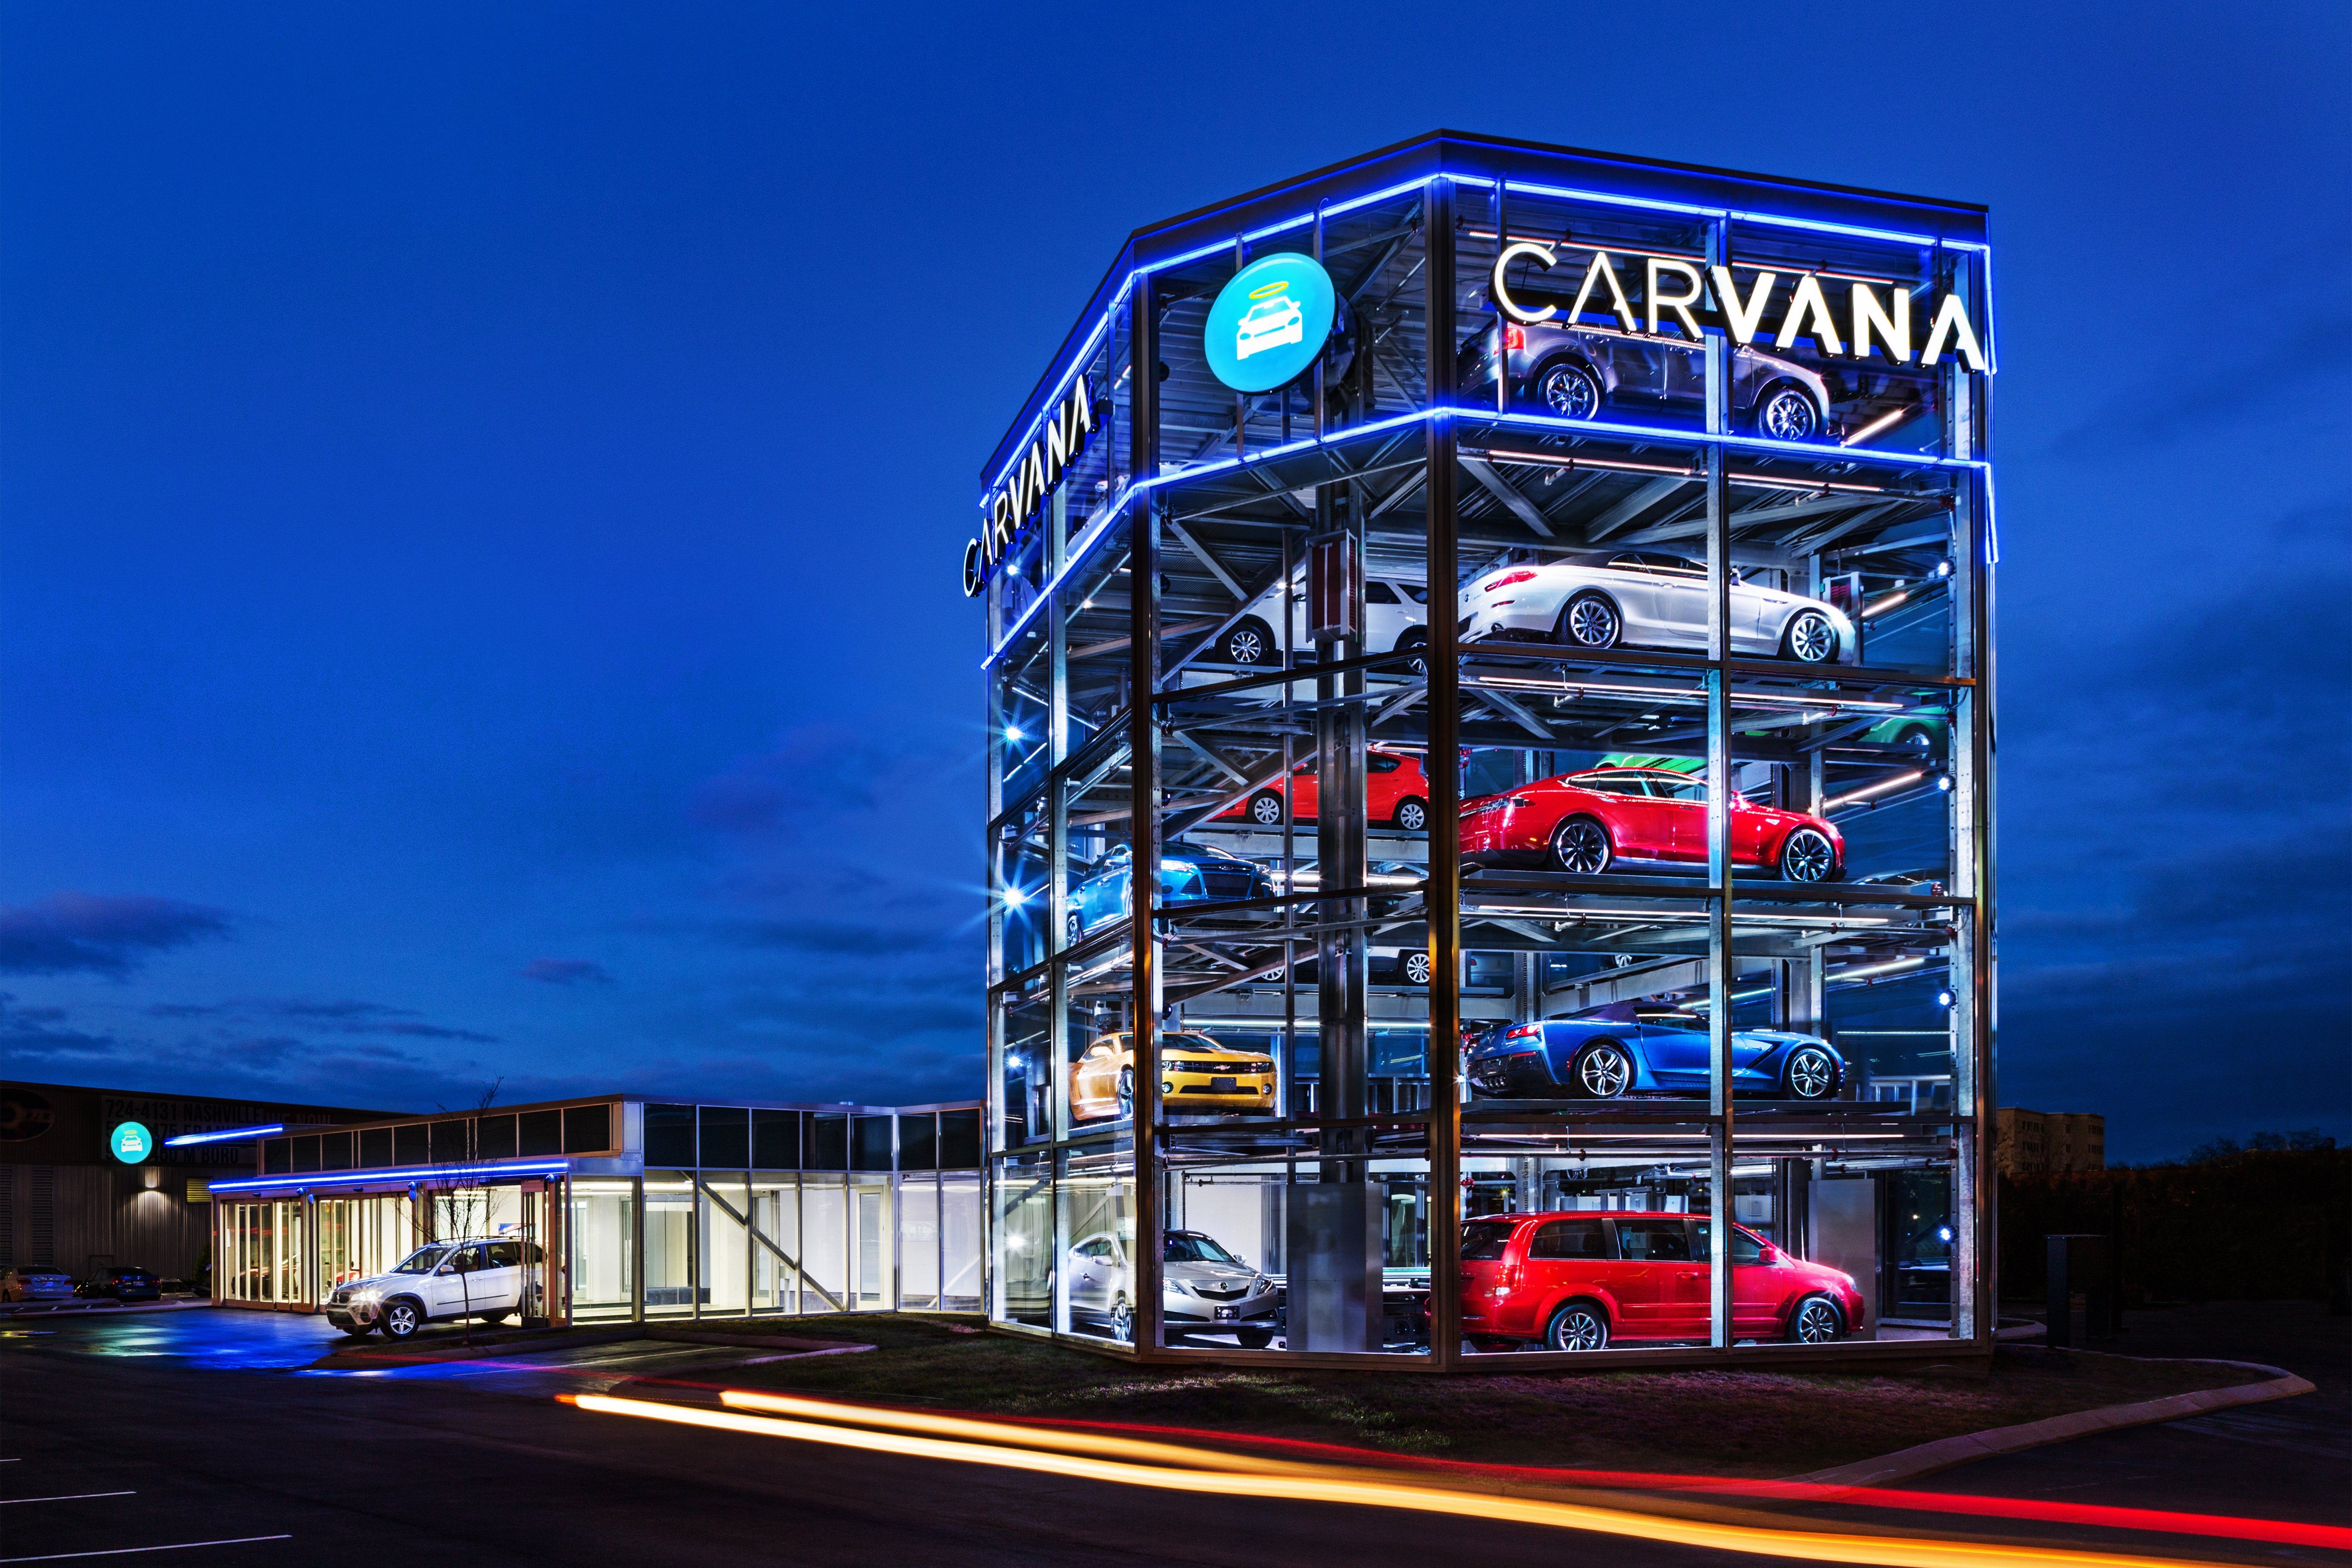 carvana opens world s first fully automated coin operated car vending machine business wire carvana opens world s first fully automated coin operated car vending machine business wire